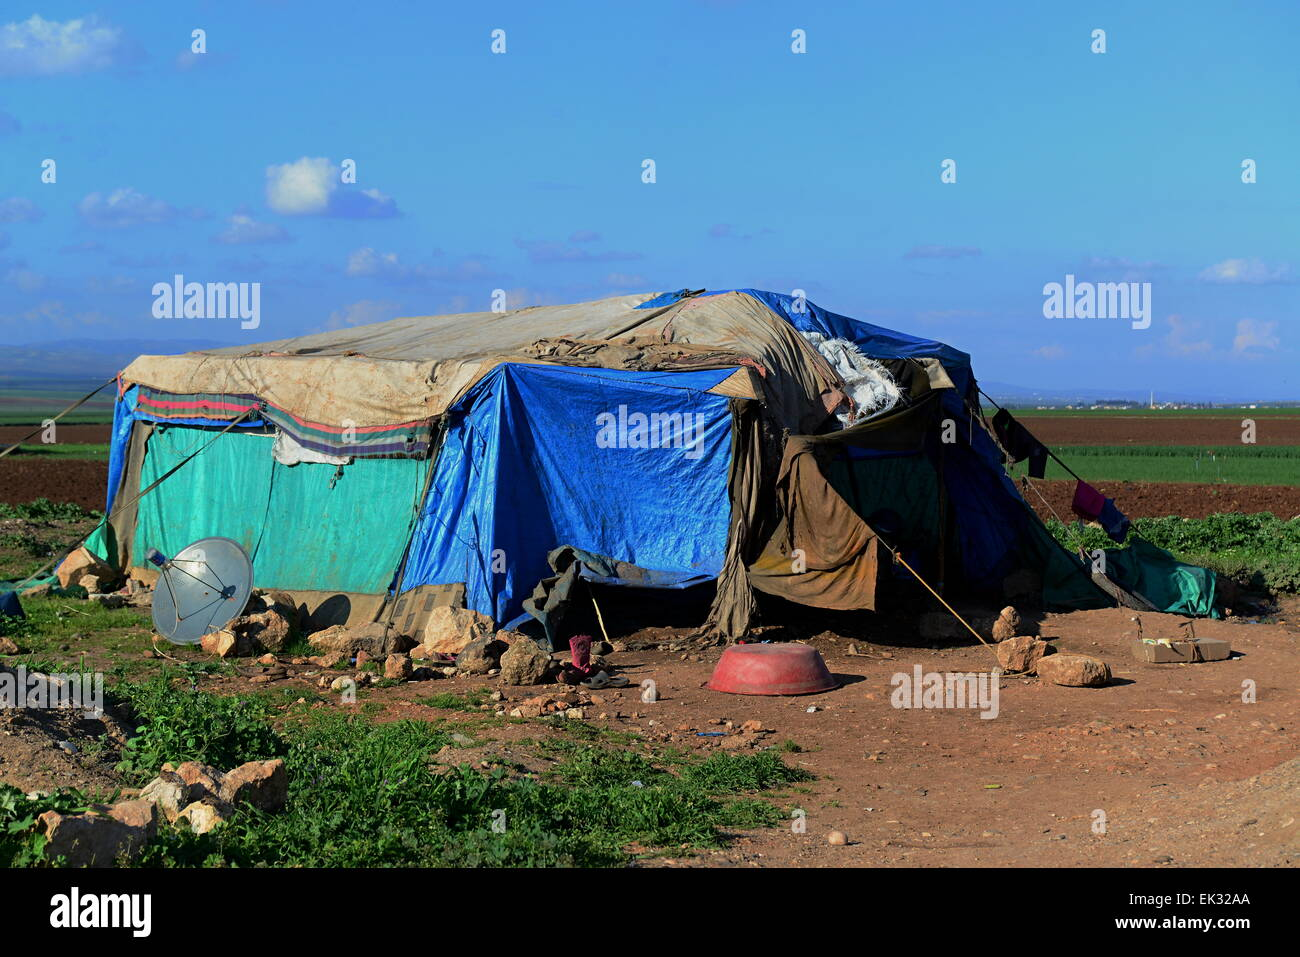 tent of homeless refugees from syria. 1.4.2015 Reyhanli, Turkey - Stock Image